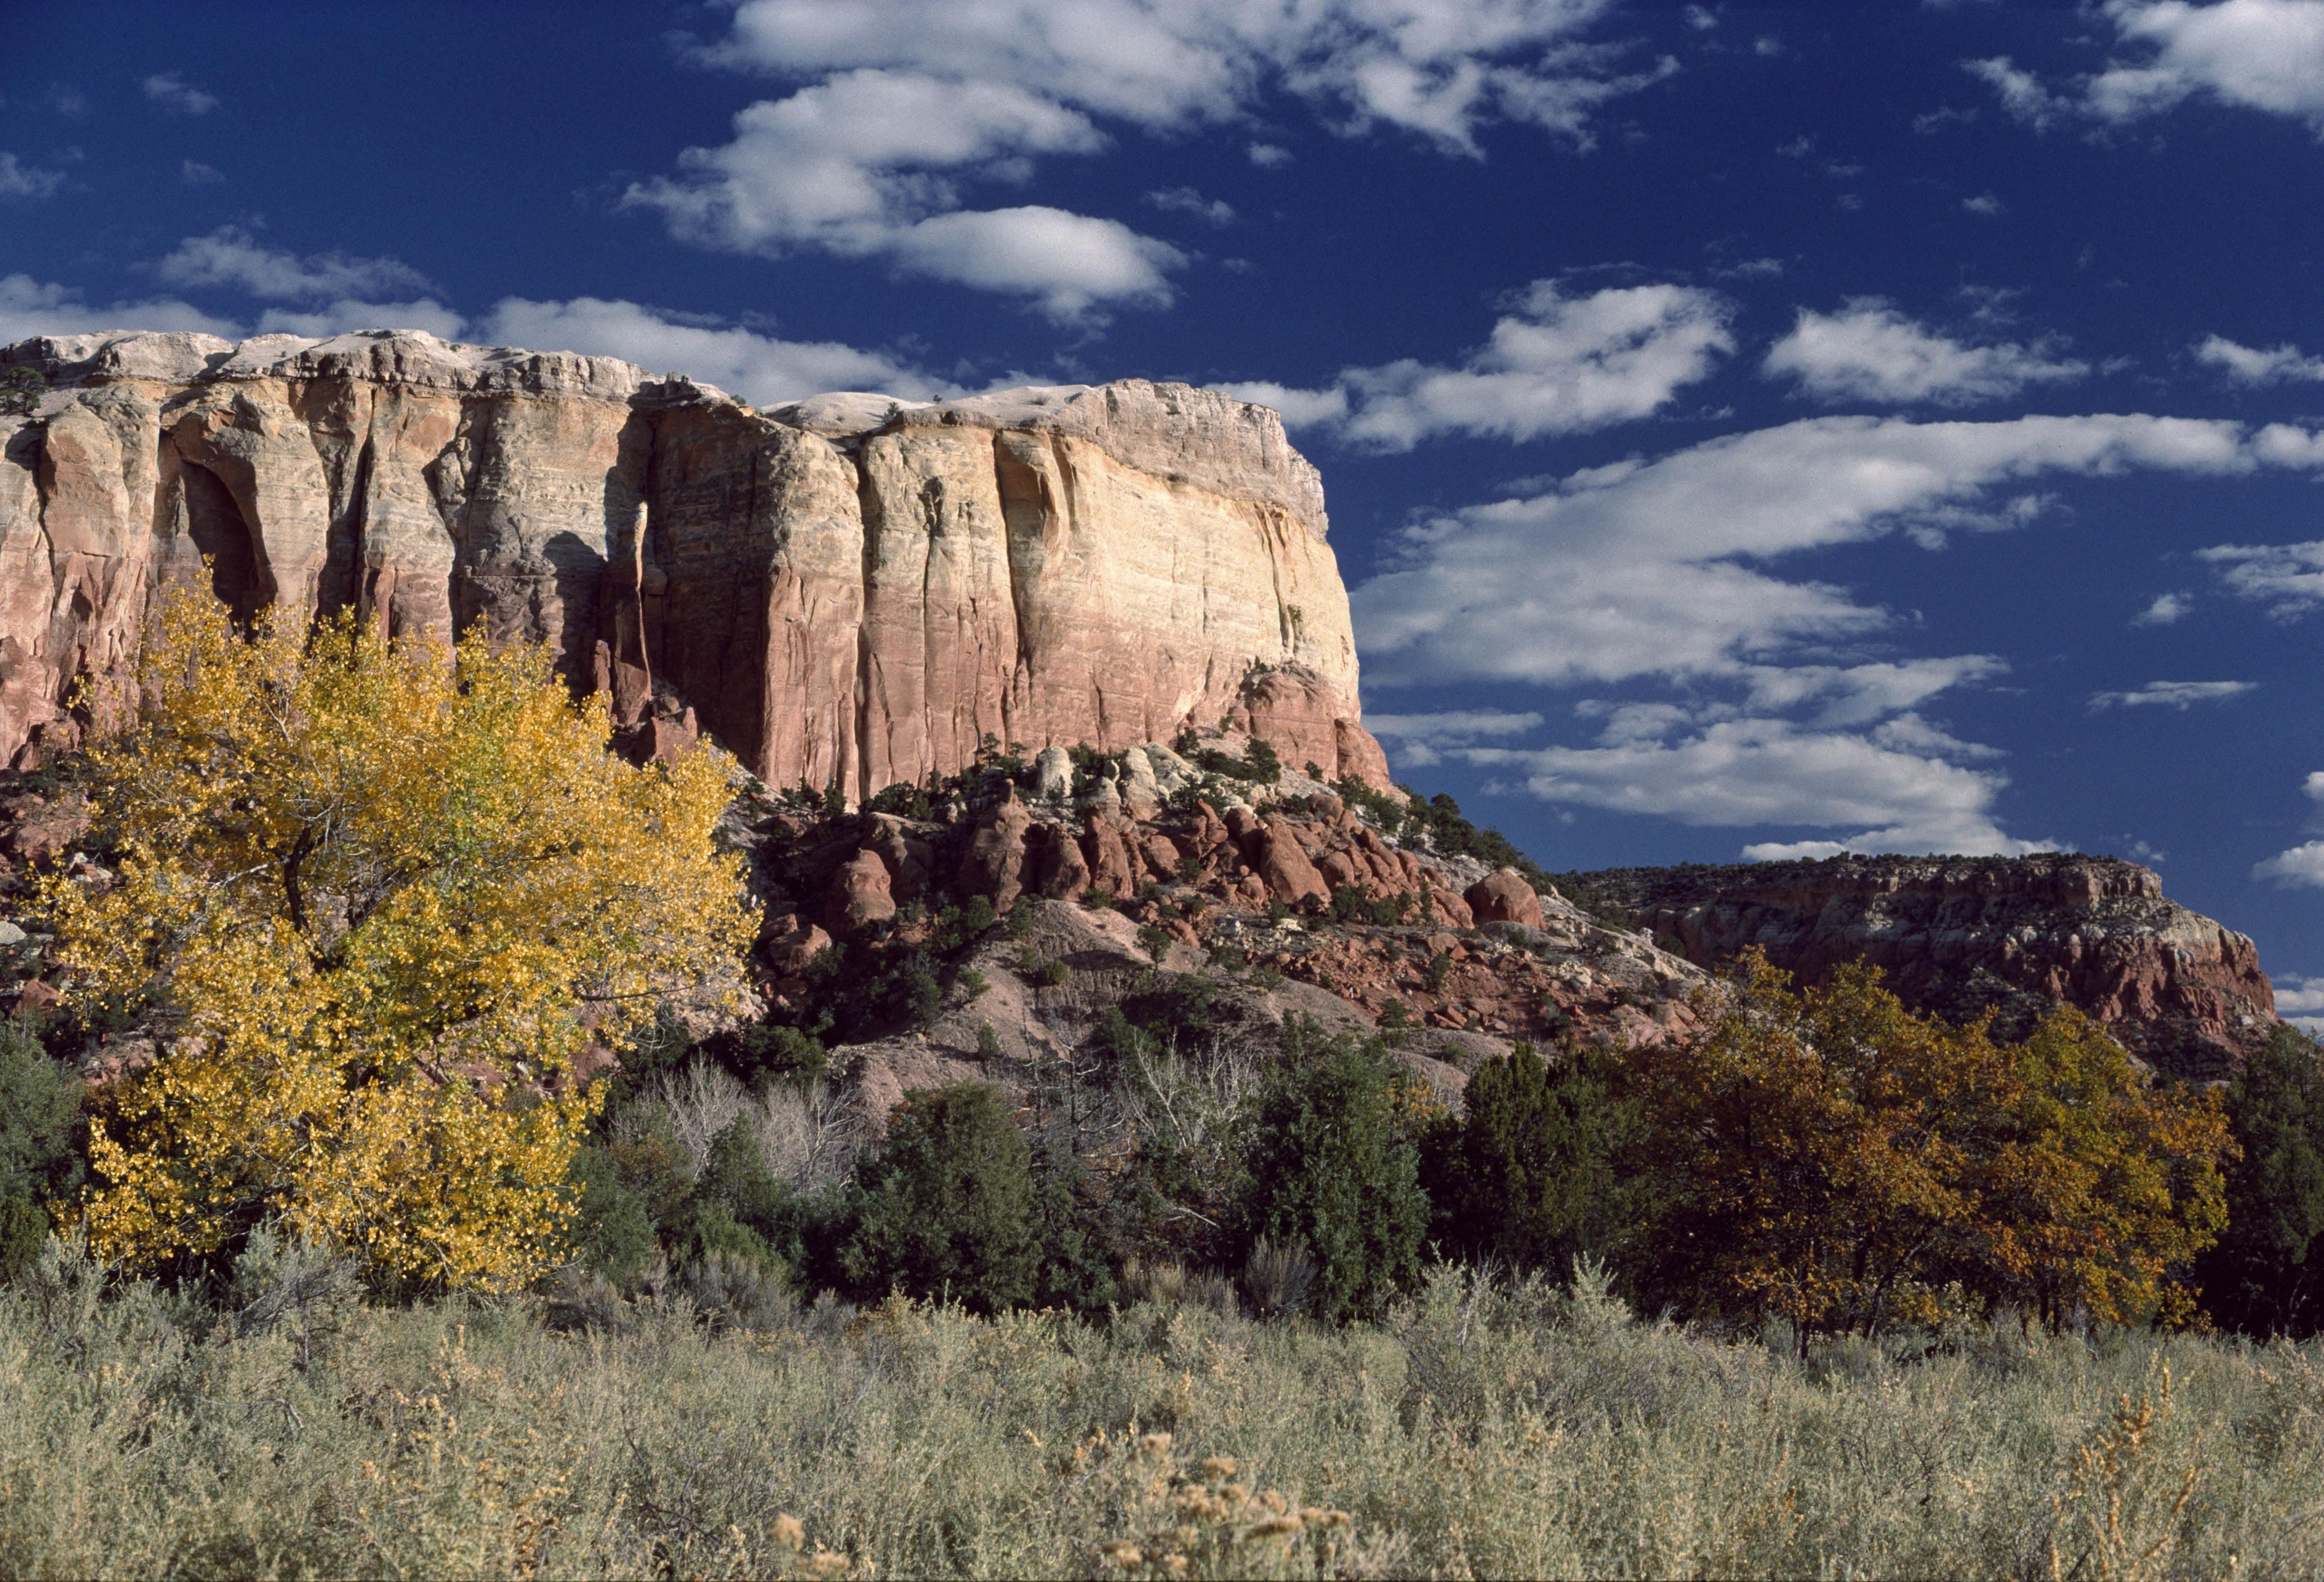 Ghost Ranch, former home of painter Georgia O'Keeffe, New Mexico, USA, 1989